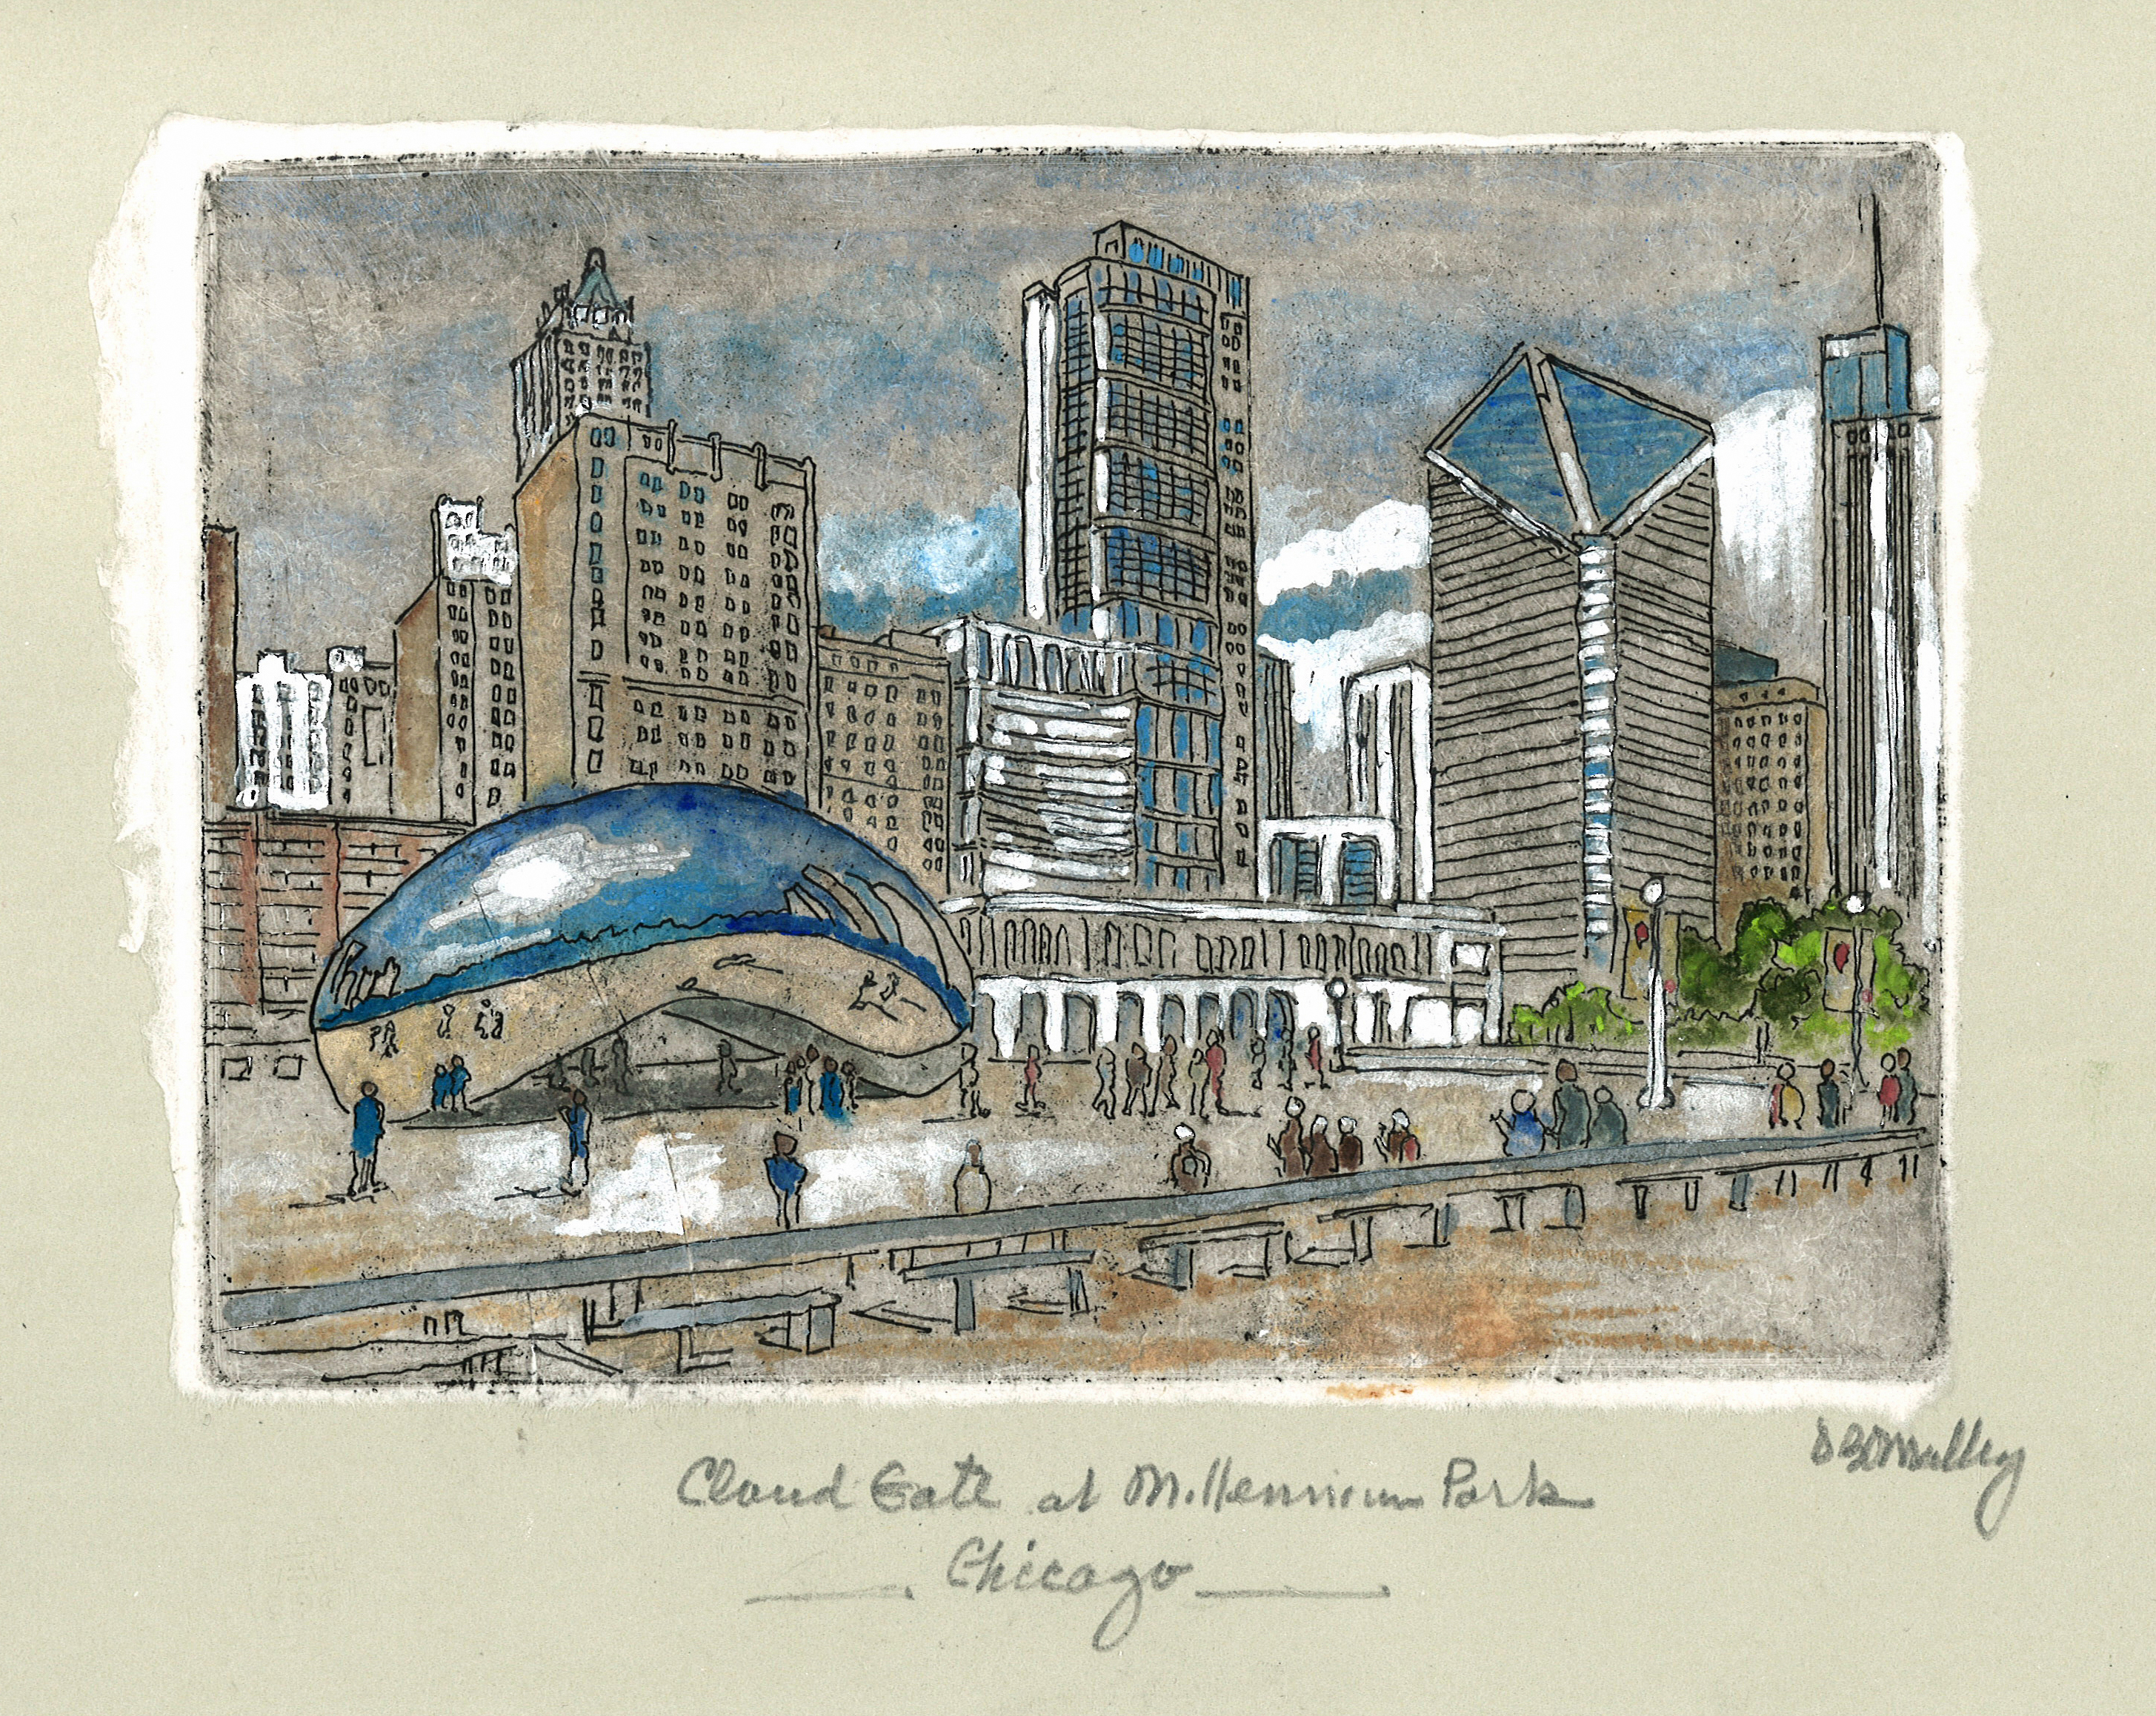 Cloud Gate at Millennium Park on Grey Paper (Plate 143)